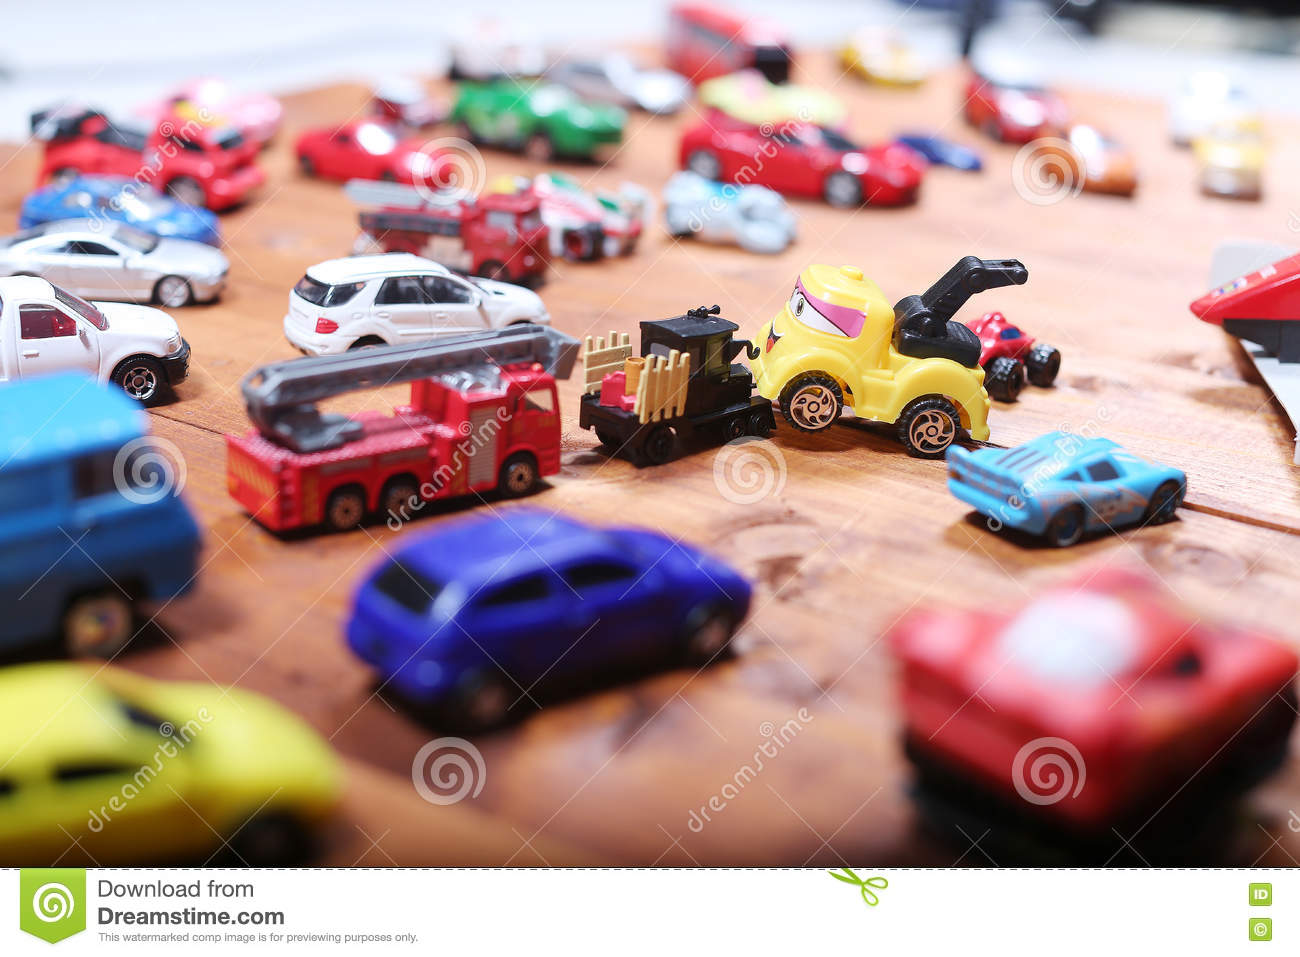 Toys For Boys To Color : Cars toys stock photo. image of color automotive toddlers 70887280